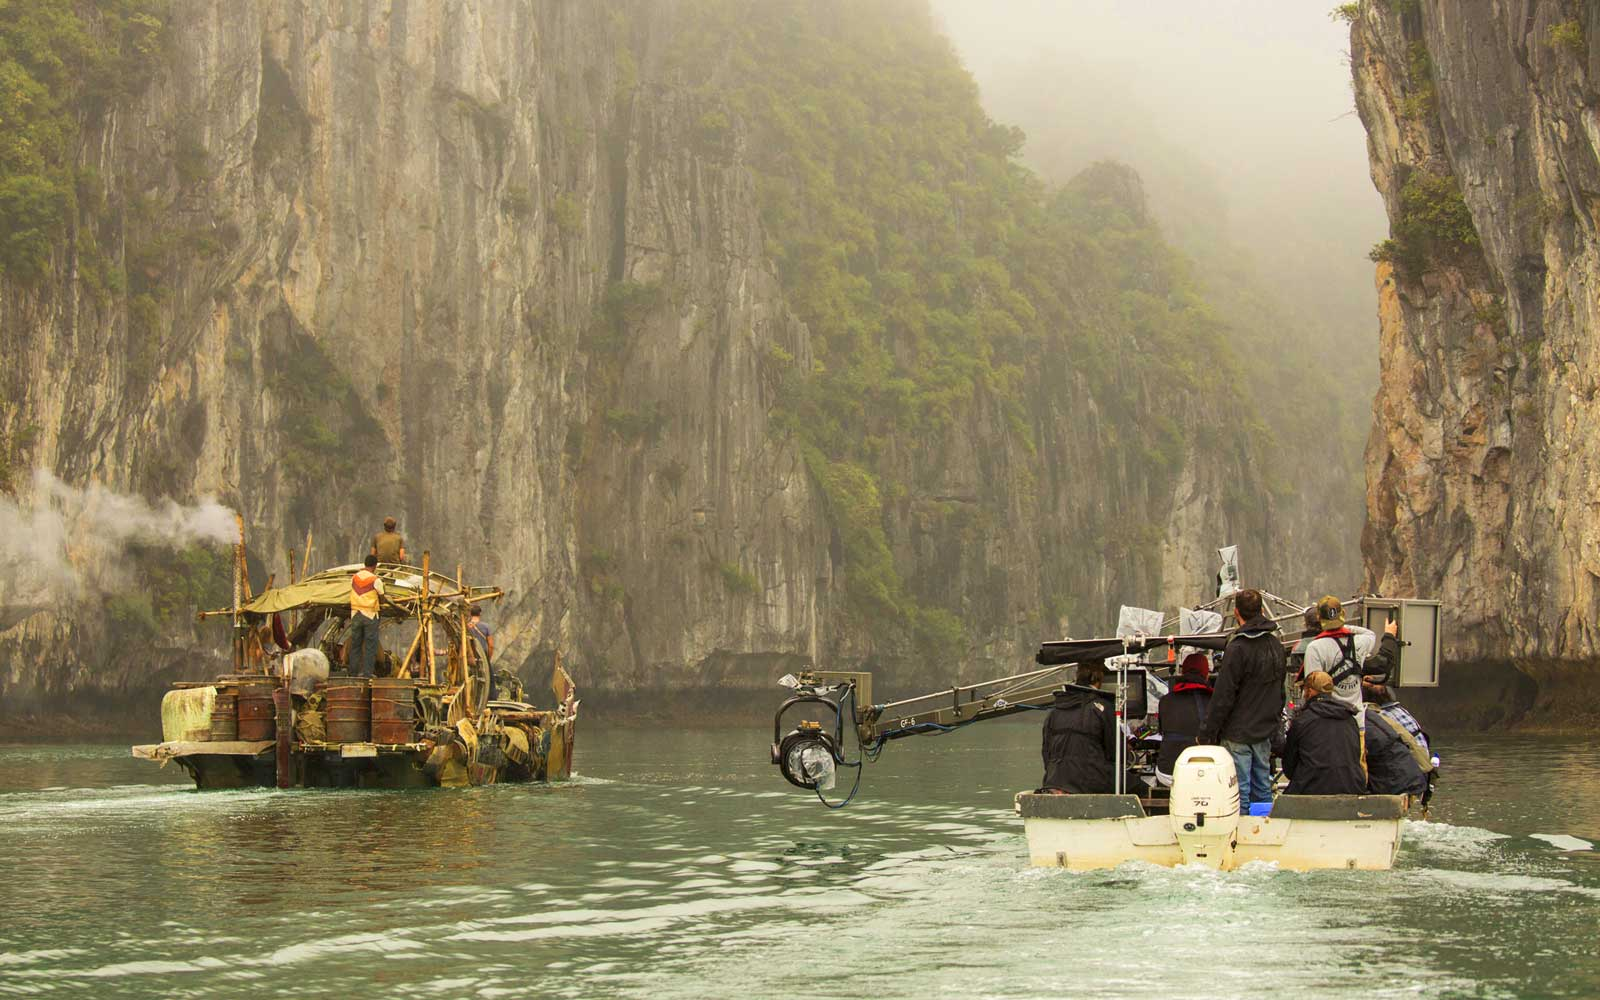 On Location in Vietnam with Jordan Vogt-Roberts, director of Kong: Skull Island